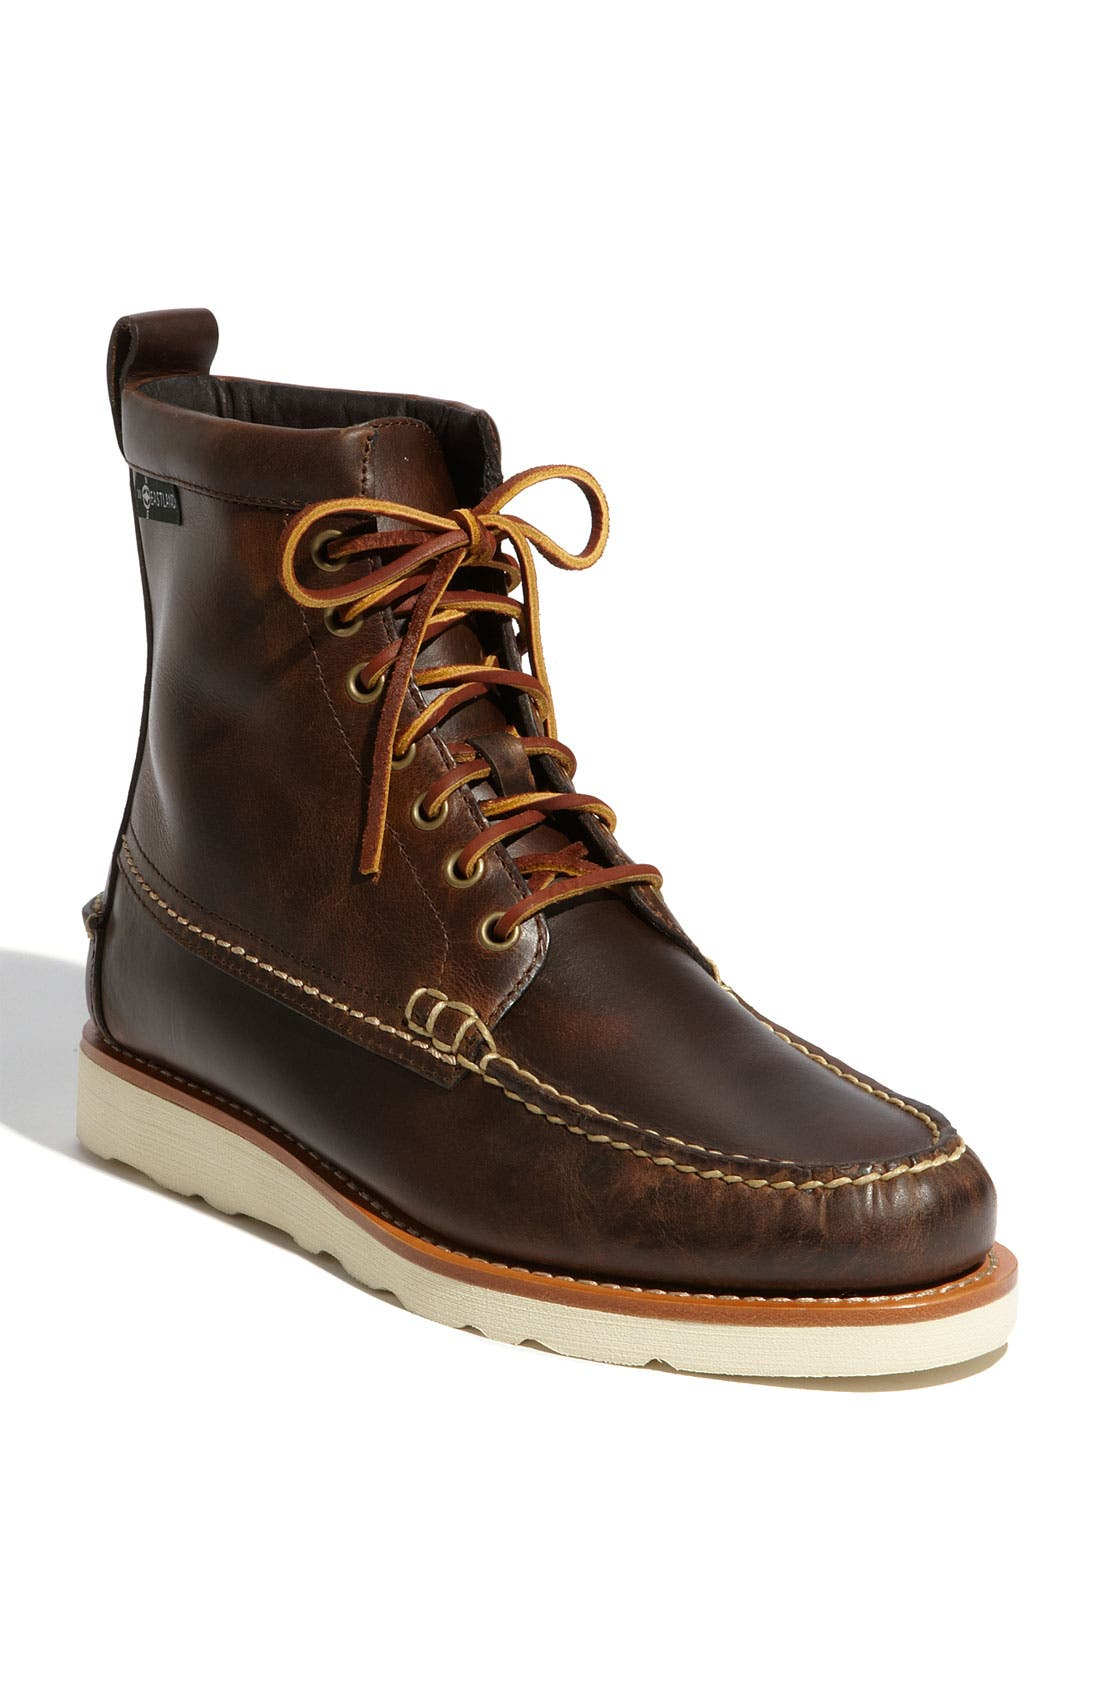 Alternate Image 1 Selected - Eastland 'Sherman 1955' Boot